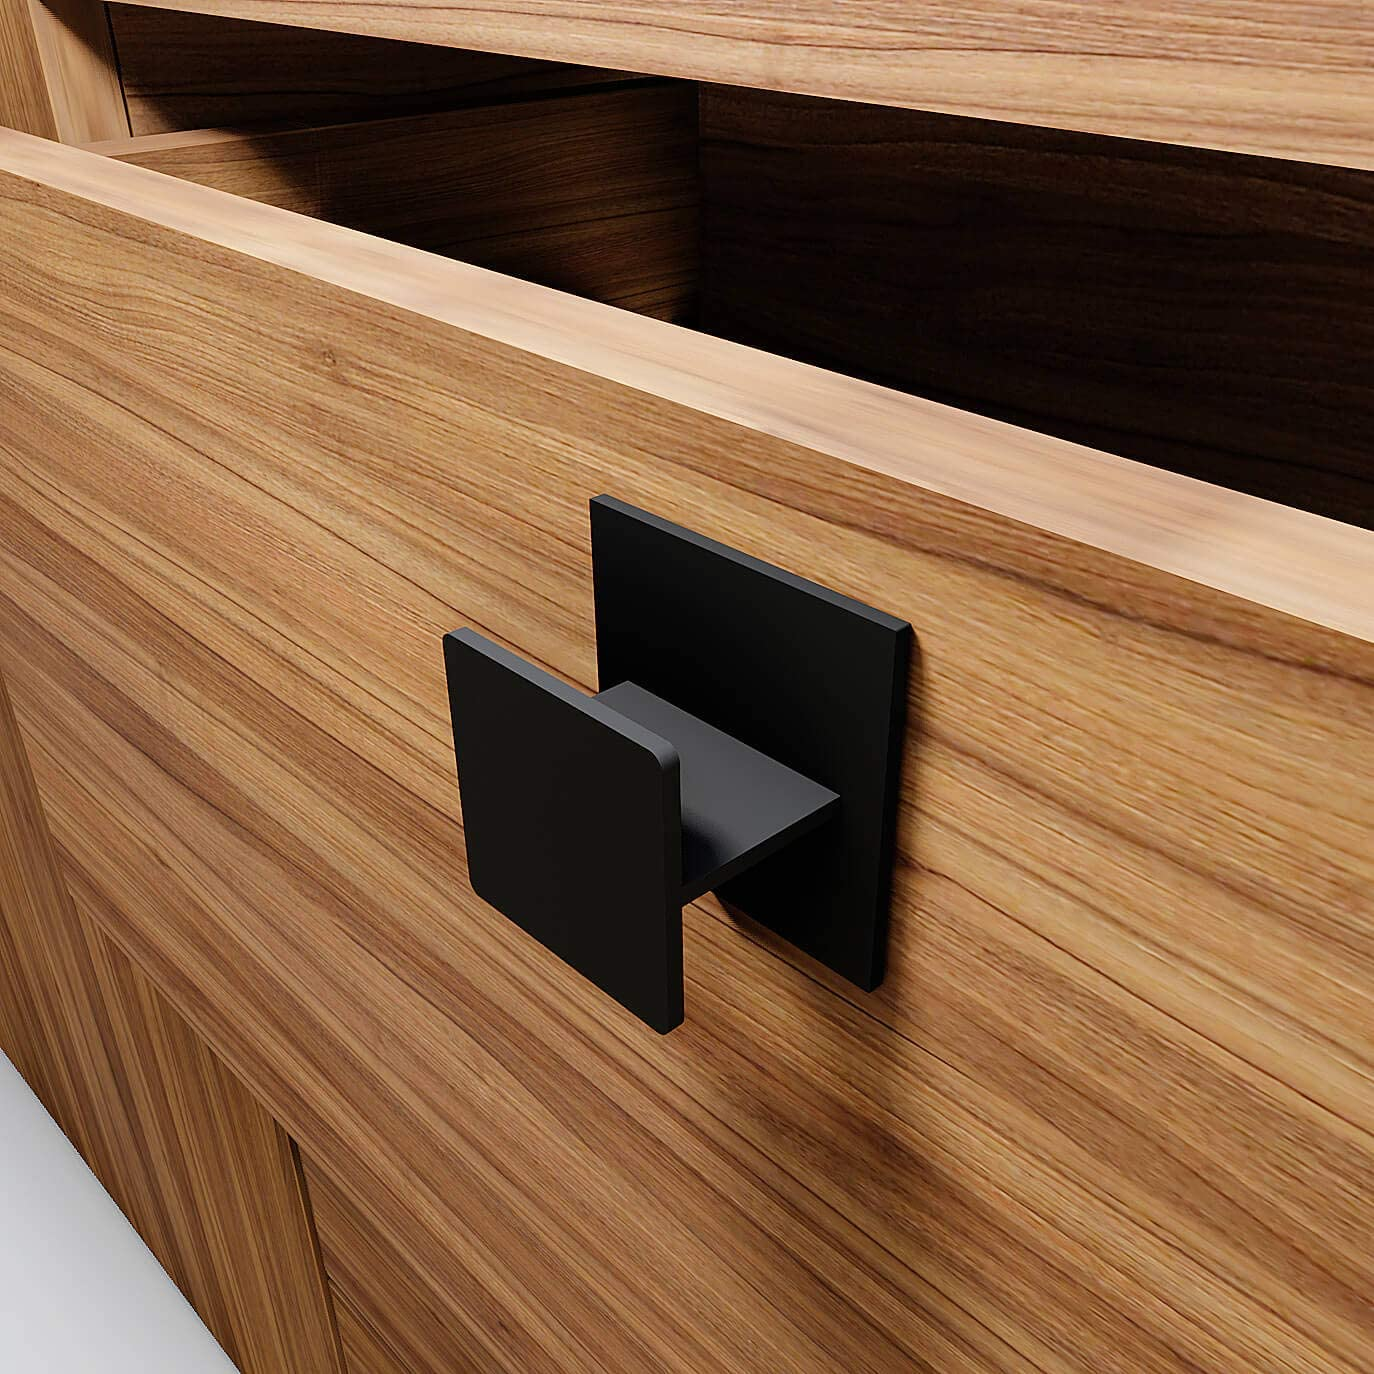 PH06 Drawer Knobs for Year-end gift Kitchen Knob Mini Omaha Mall Door Cabinet Handl